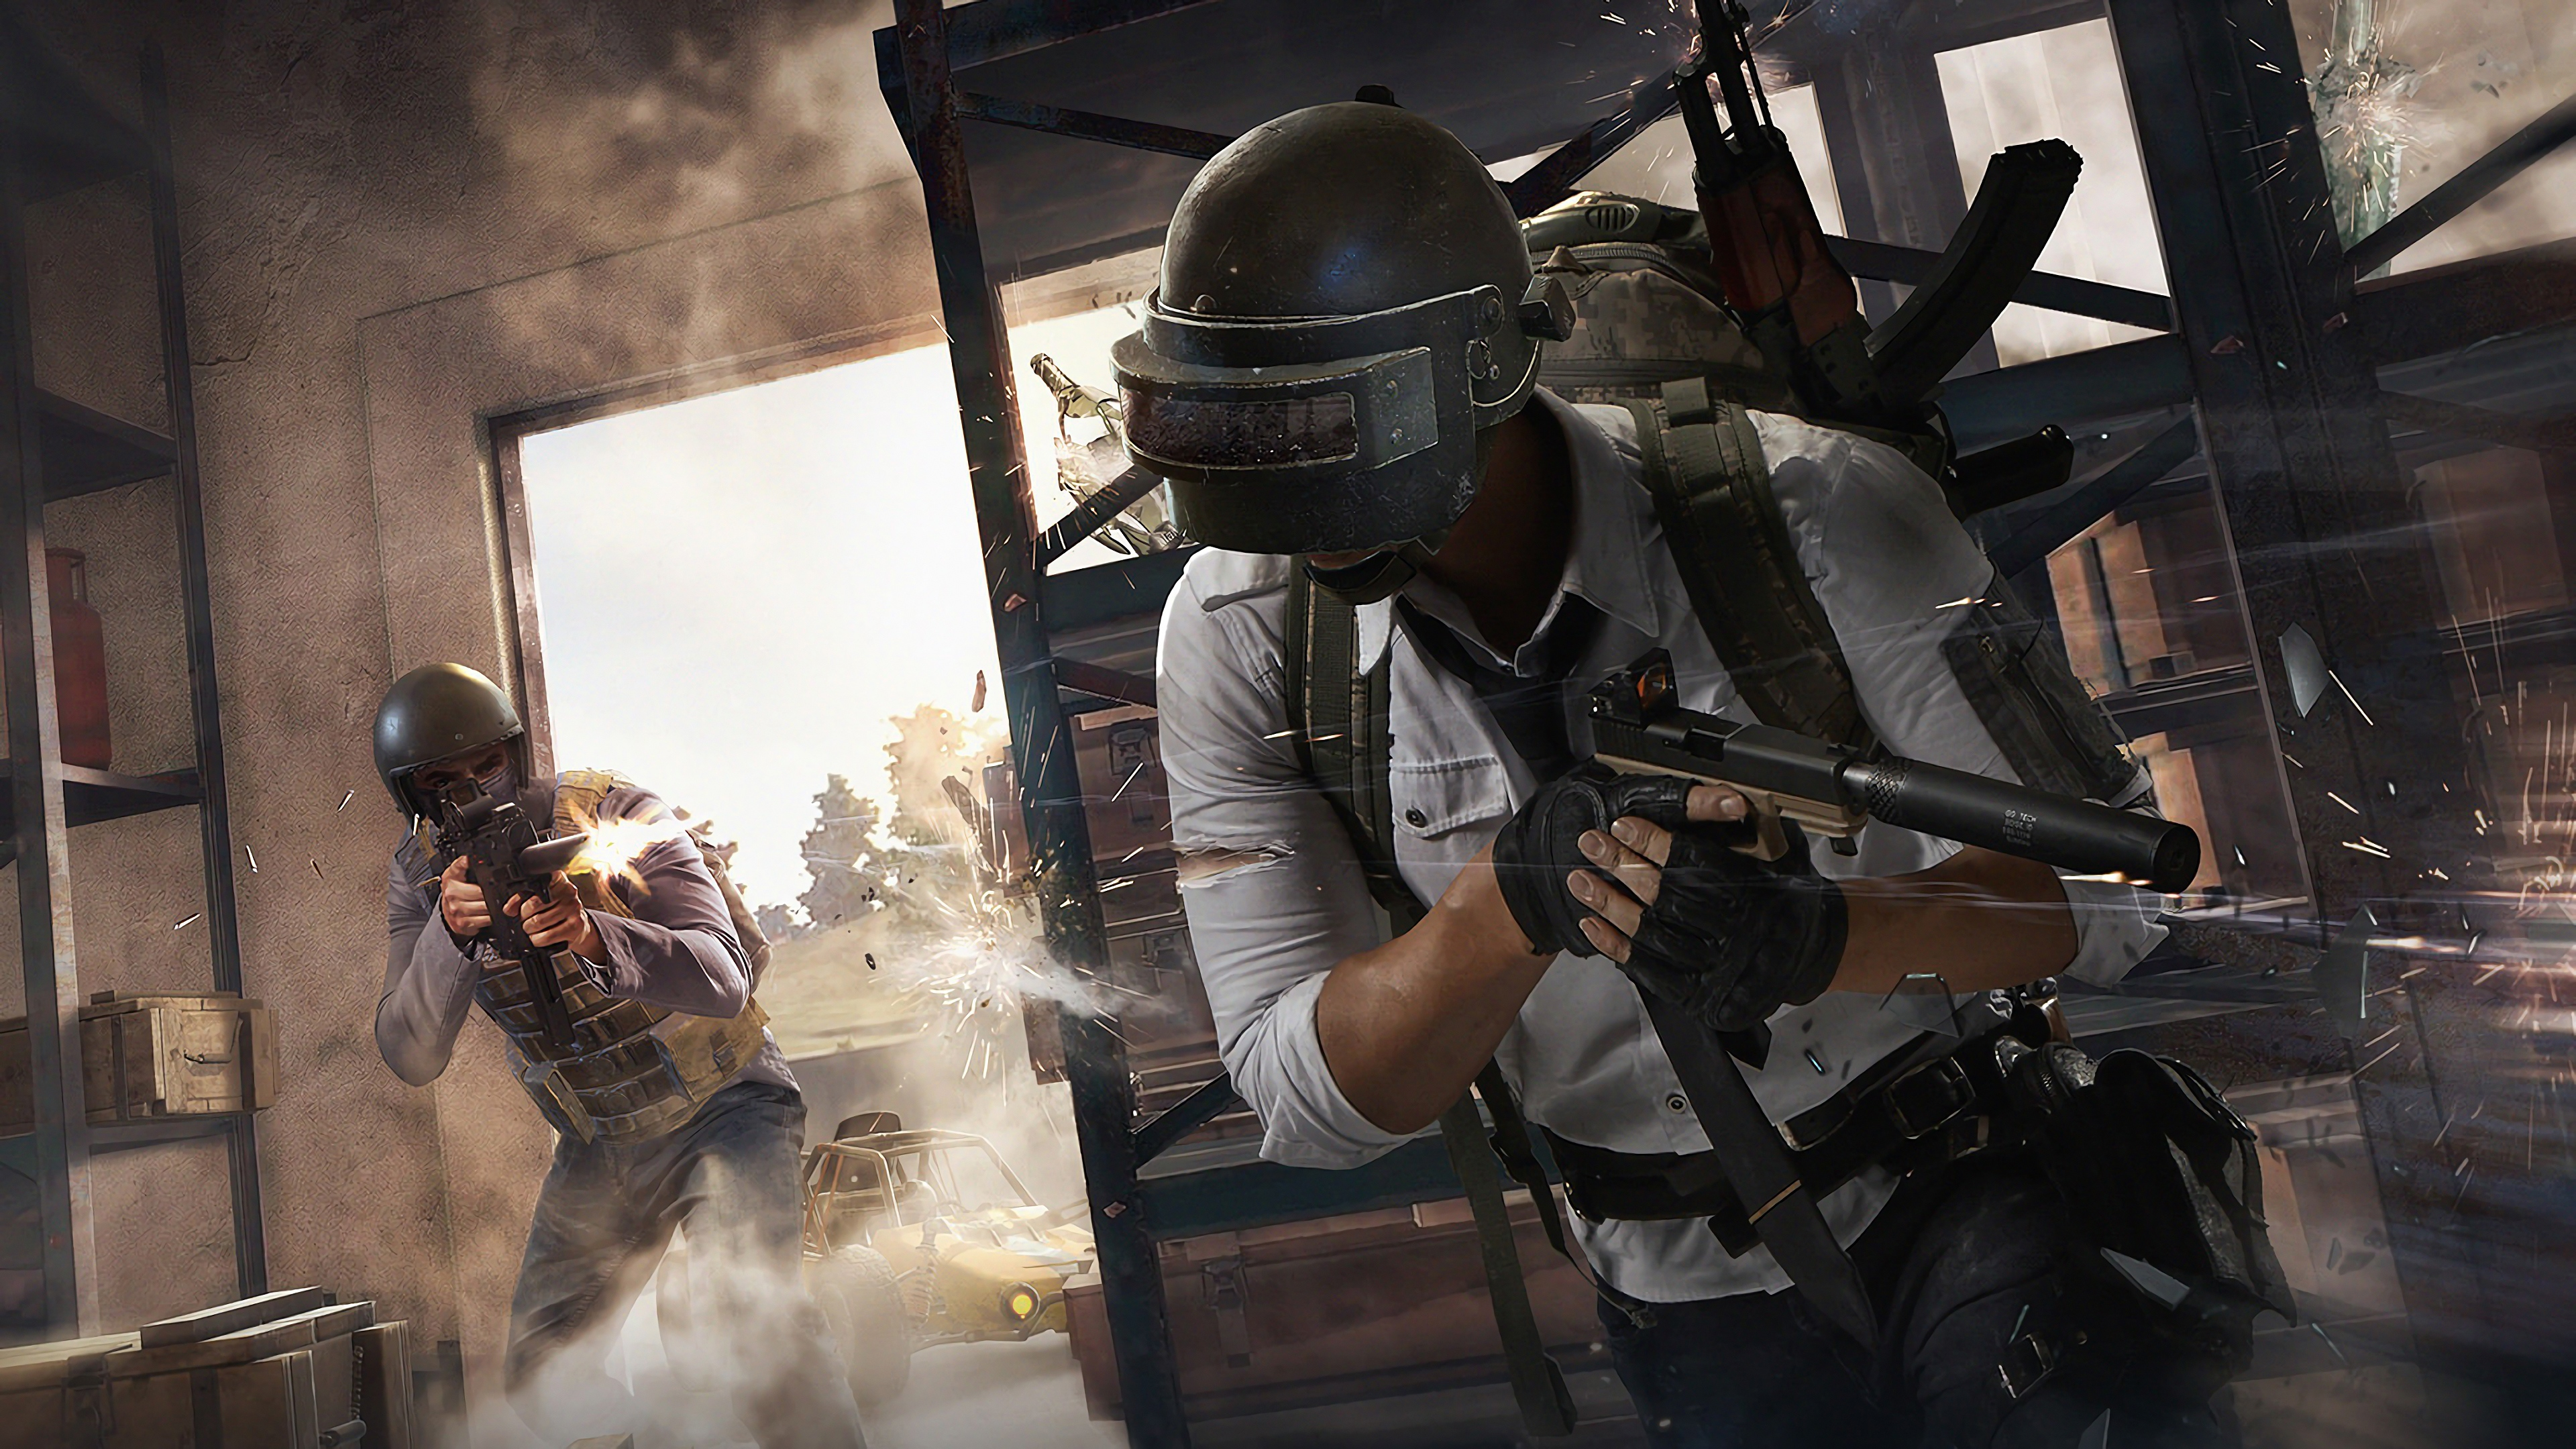 Pubg Gun Wallpaper 4k: 1440x900 PUBG Helmet Guy 2018 4k 1440x900 Resolution HD 4k